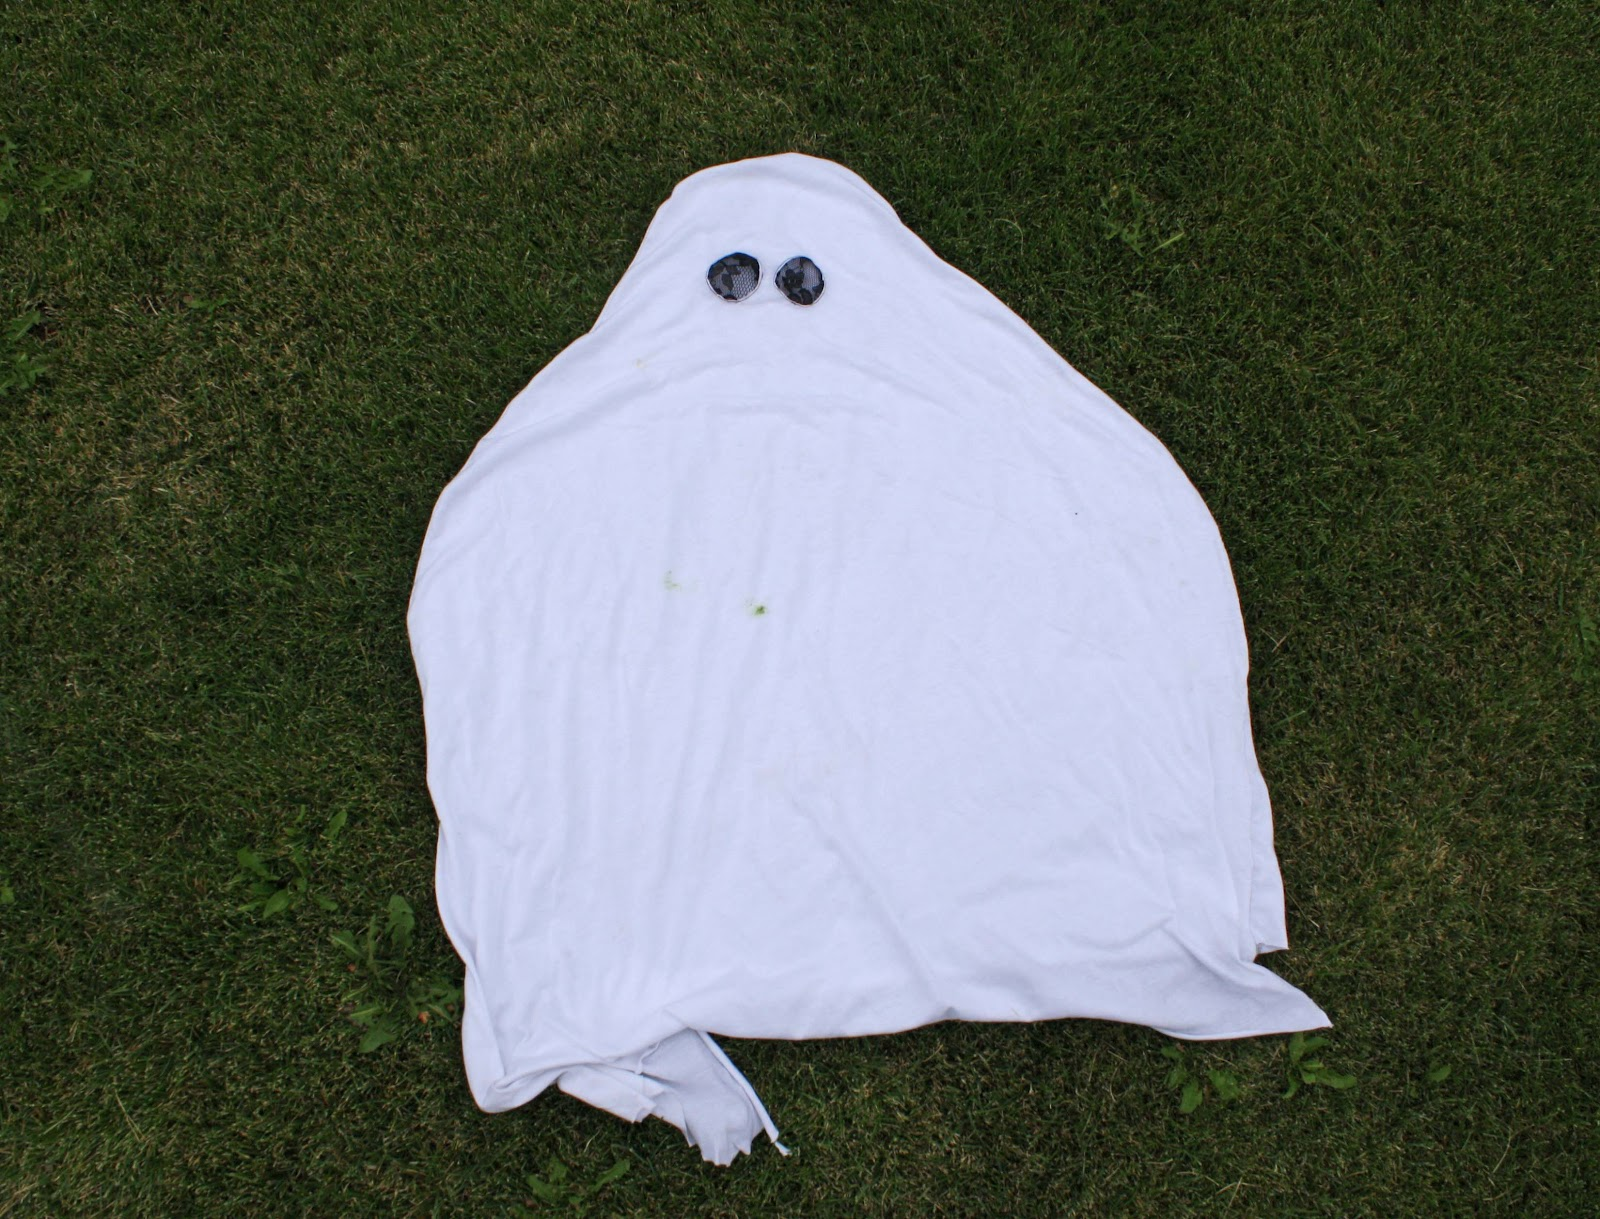 & Running With Scissors: Easy DIY Ghost Costume